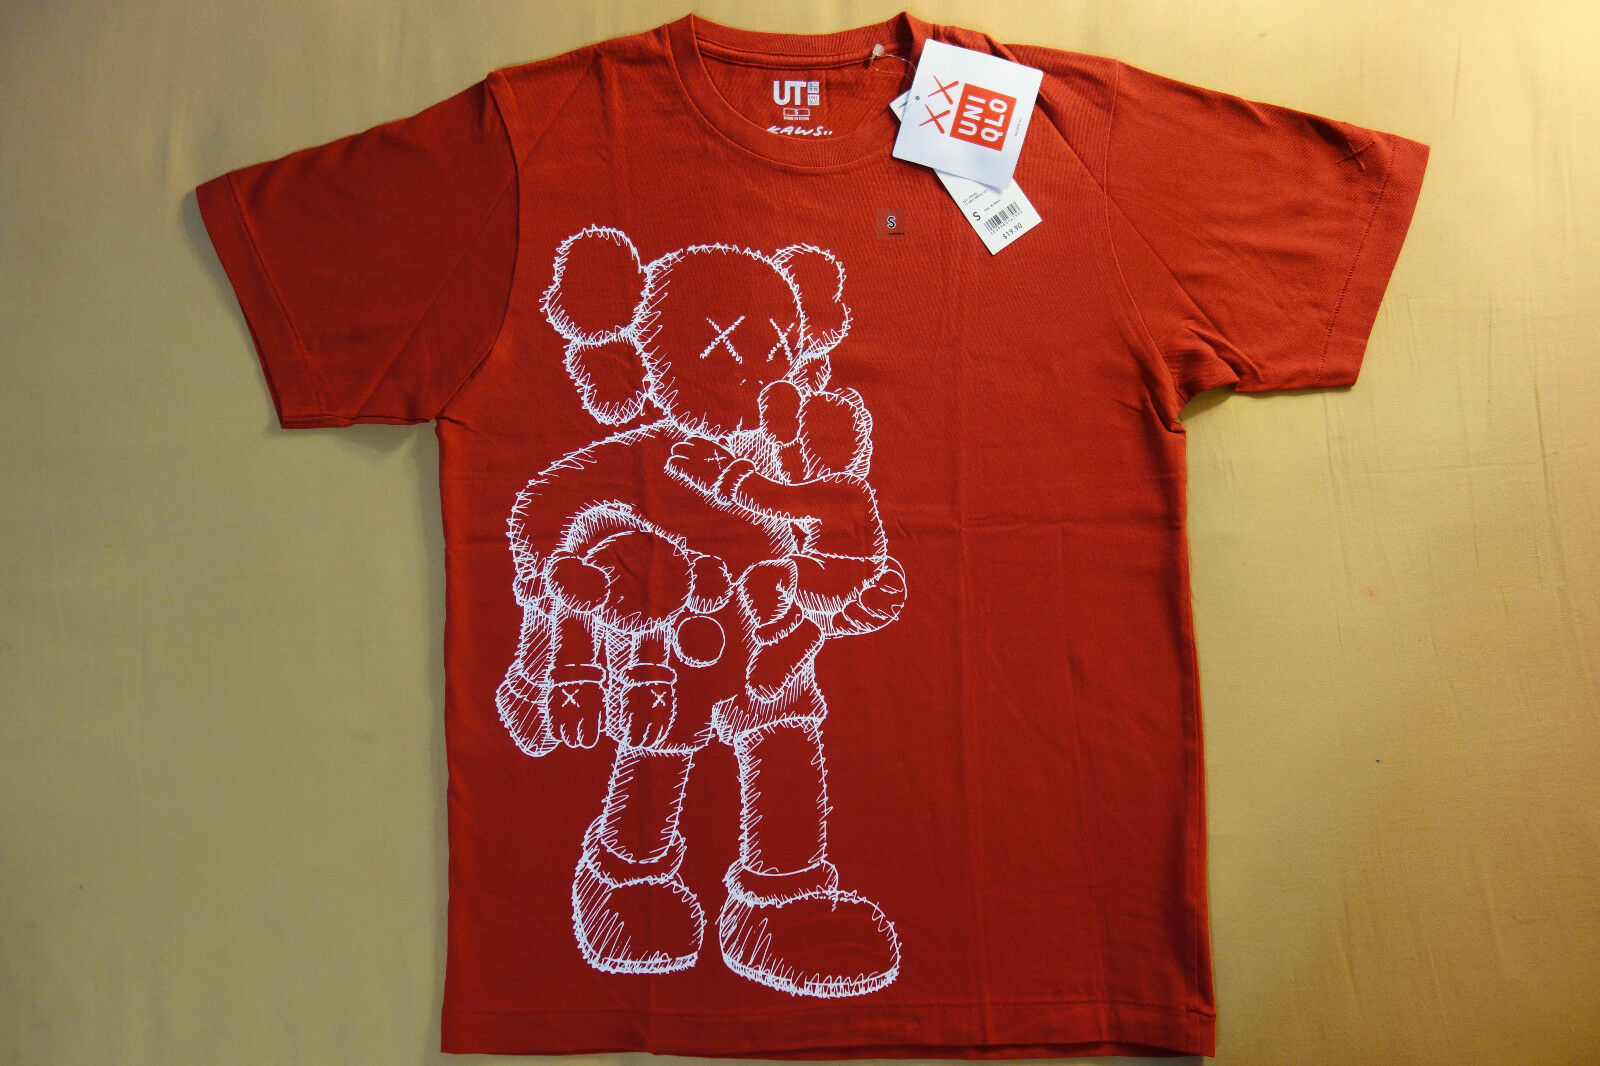 Kaws x Uniqlo UT 2016 Short Sleeve Graphic T-Shirt